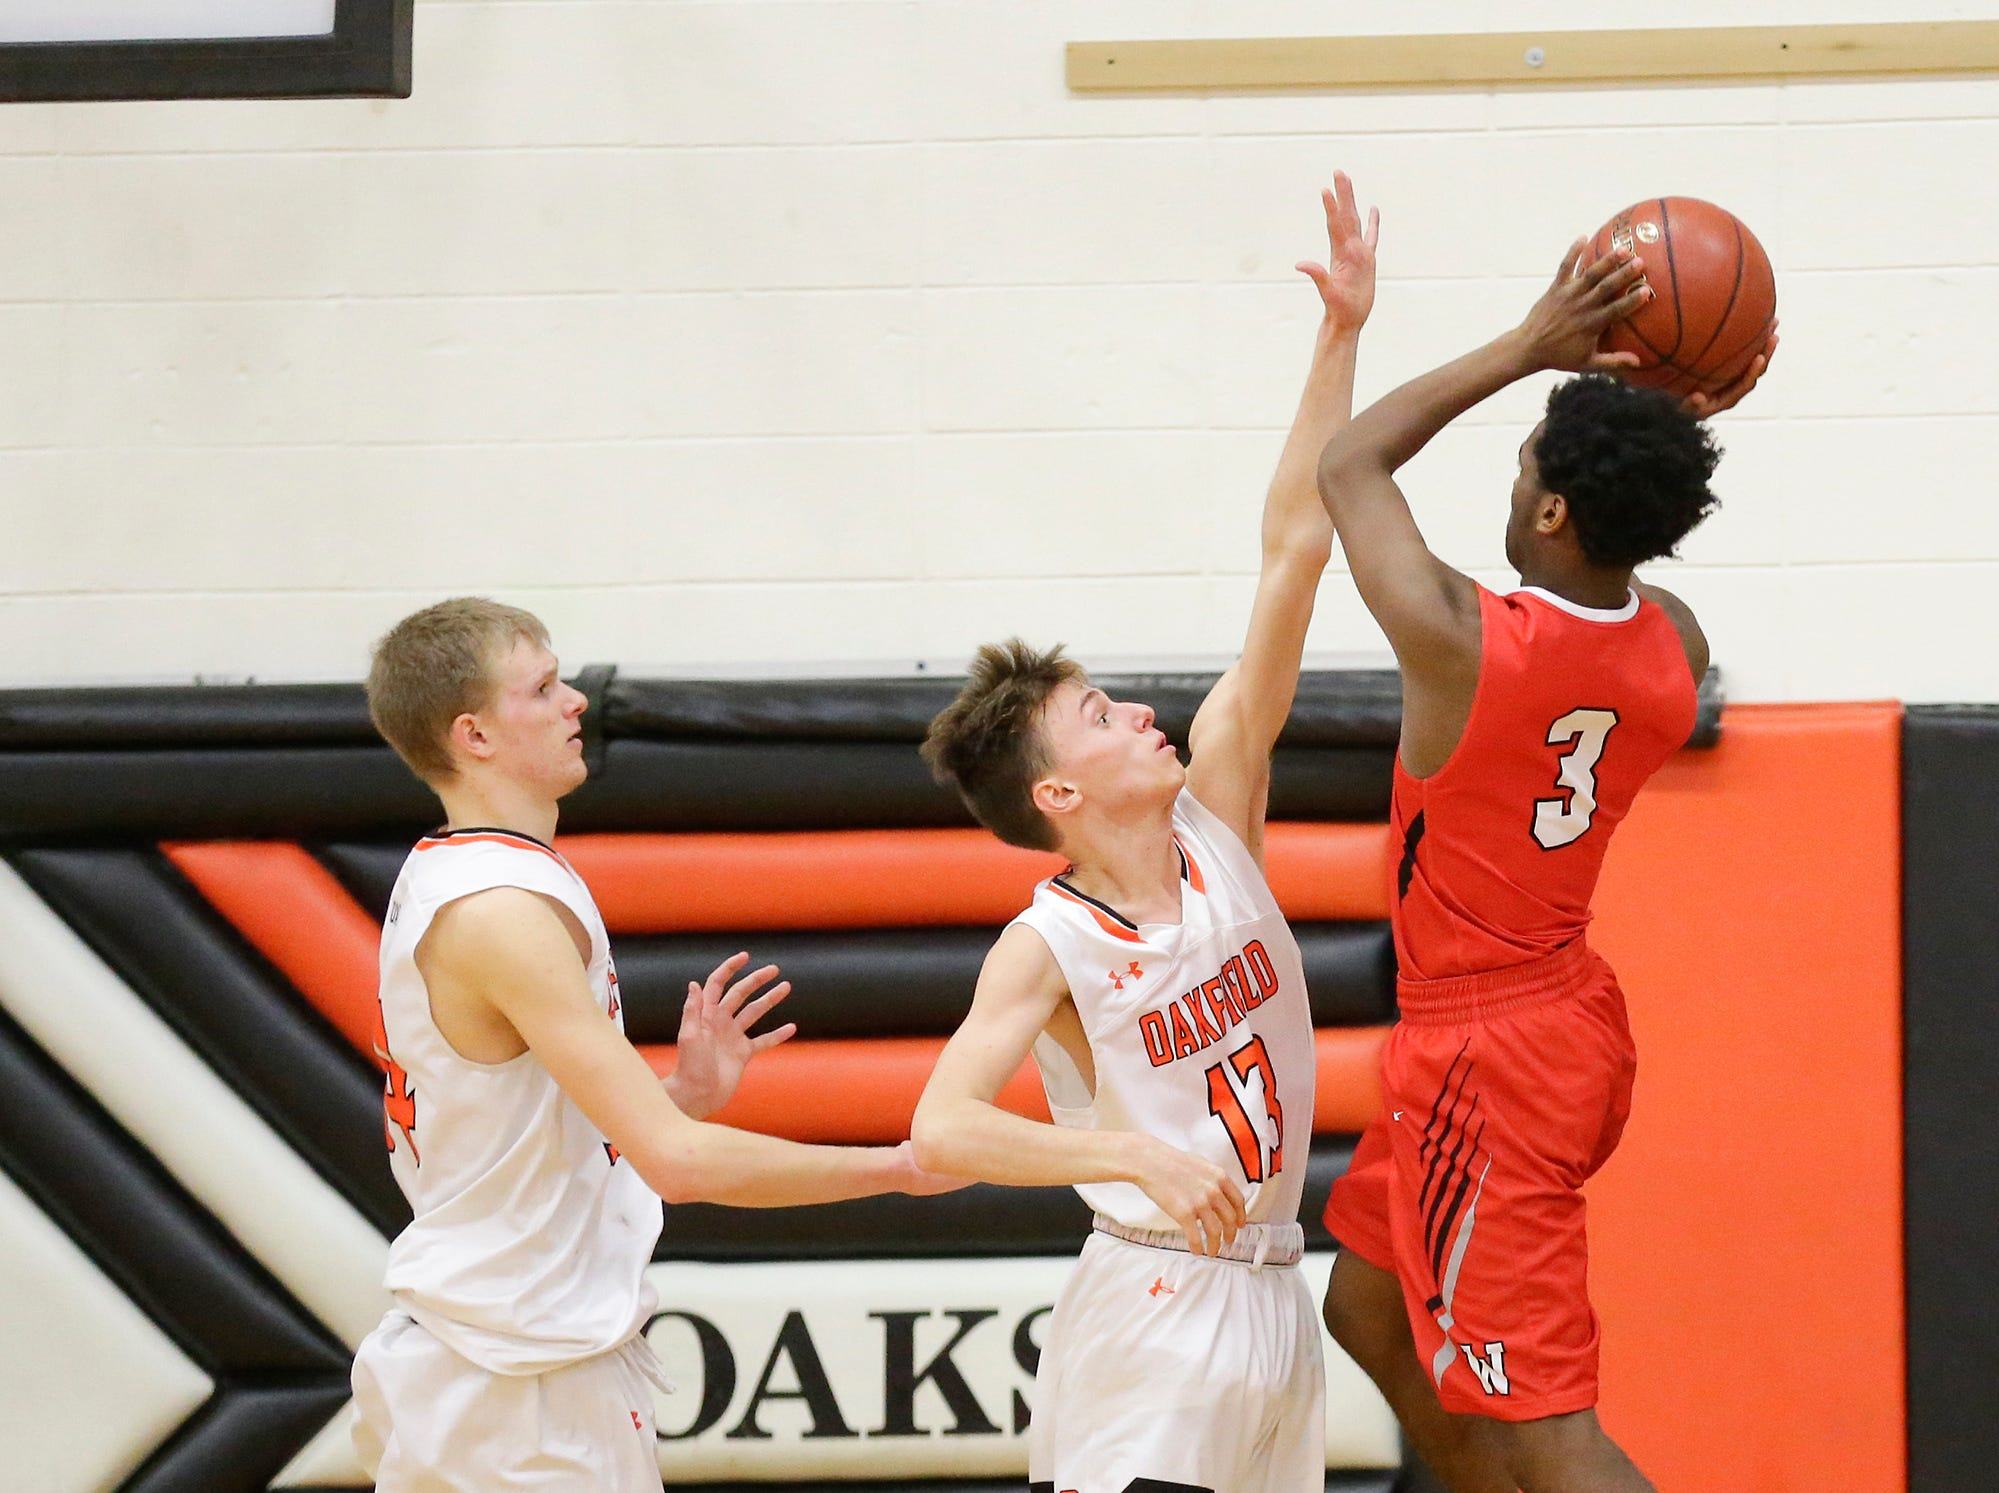 Oakfield High School boys basketball's Tyler Streeter defends against Wayland Academy's Jared Sullivan January 11, 2019 during their game in Oakfield. Oakfield won the game 56-48. Doug Raflik/USA TODAY NETWORK-Wisconsin